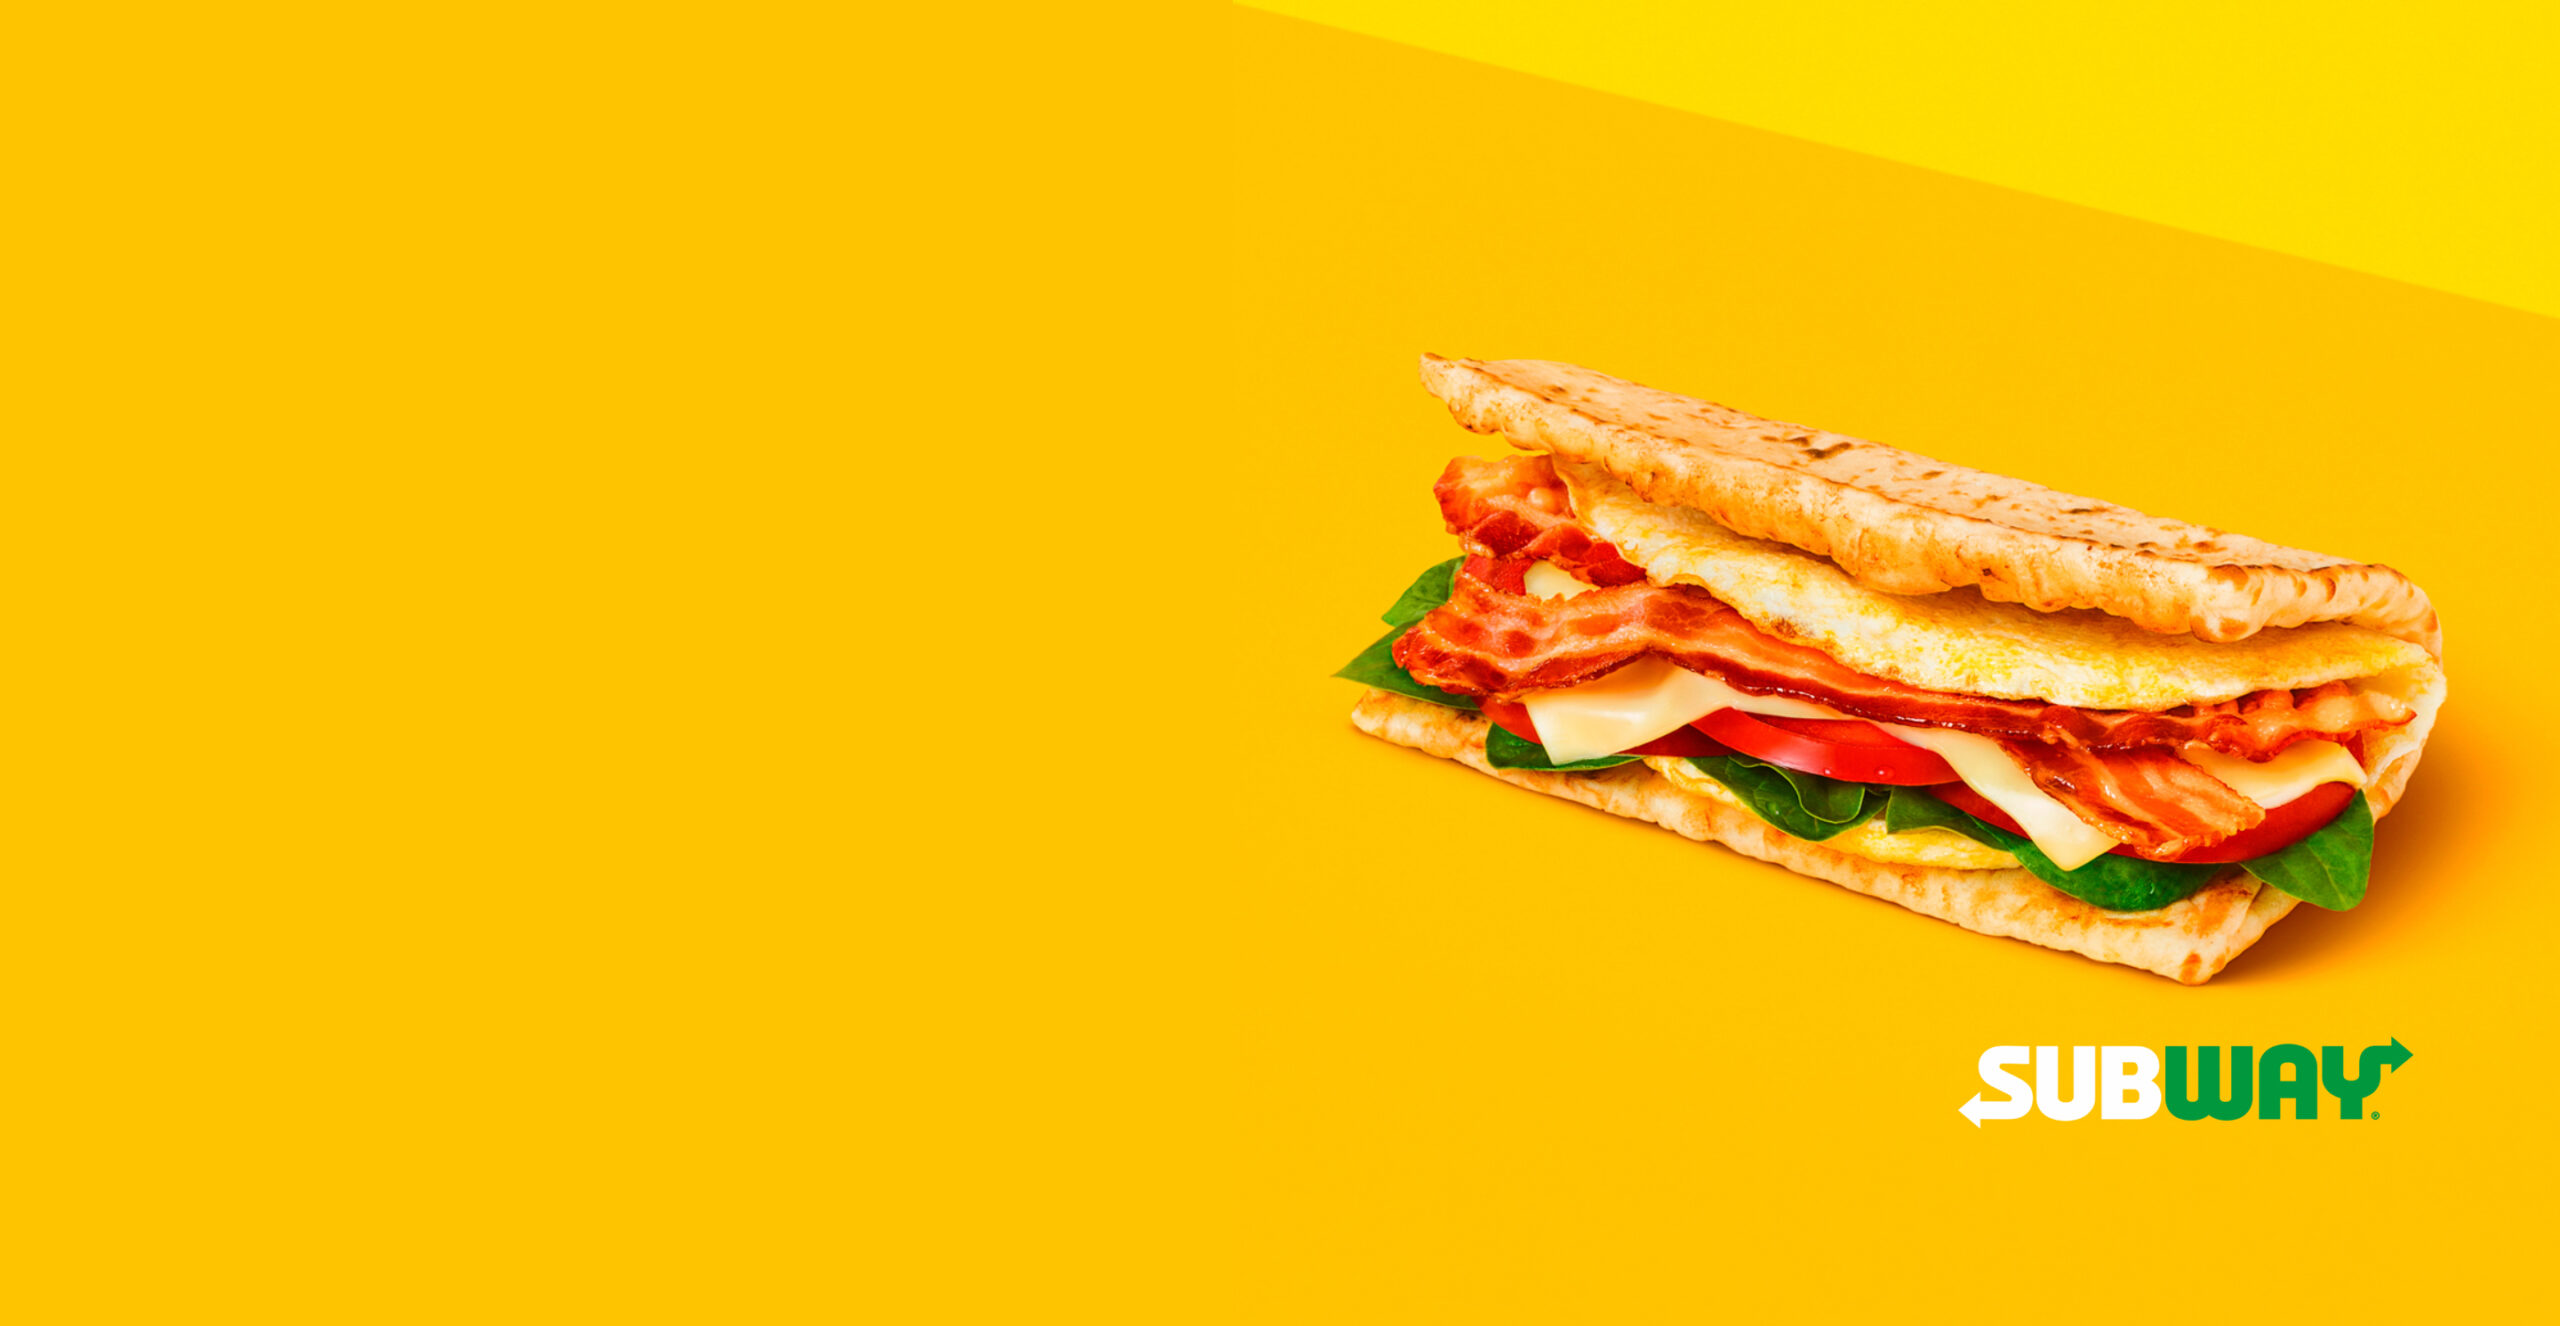 Subway-Header